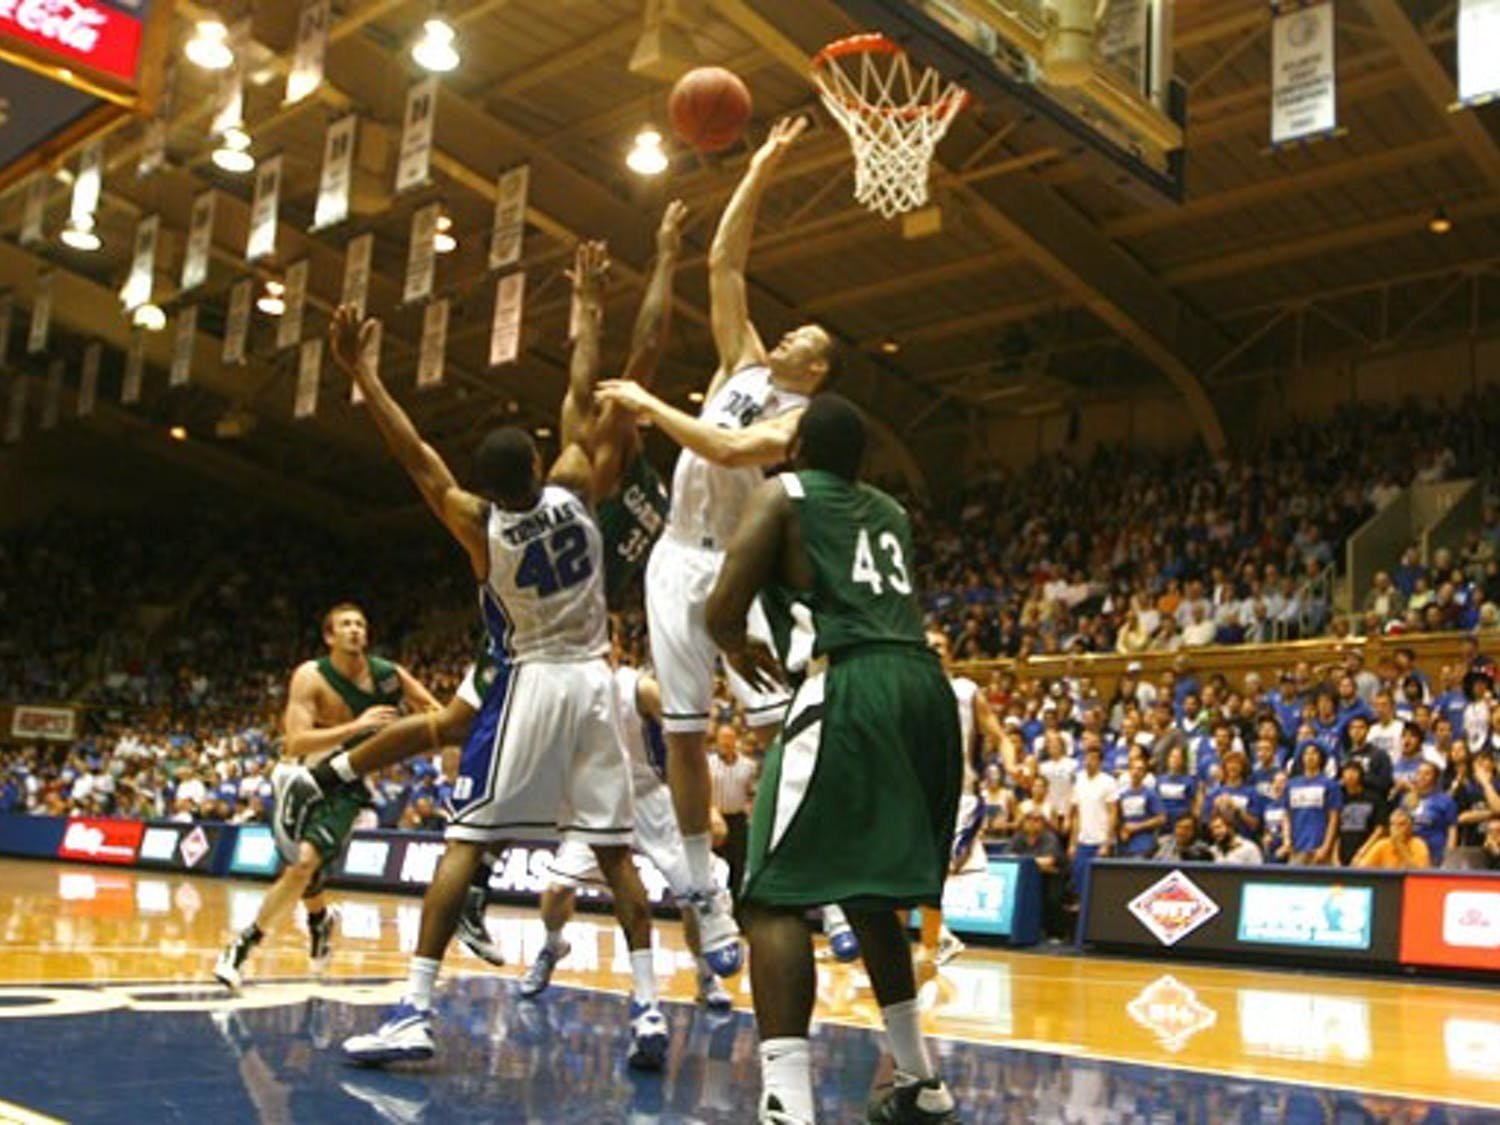 Lance Thomas (left), Miles Plumlee and the rest of the Duke defense held Charlotte to under 34 percent shooting in Tuesday's easy win.